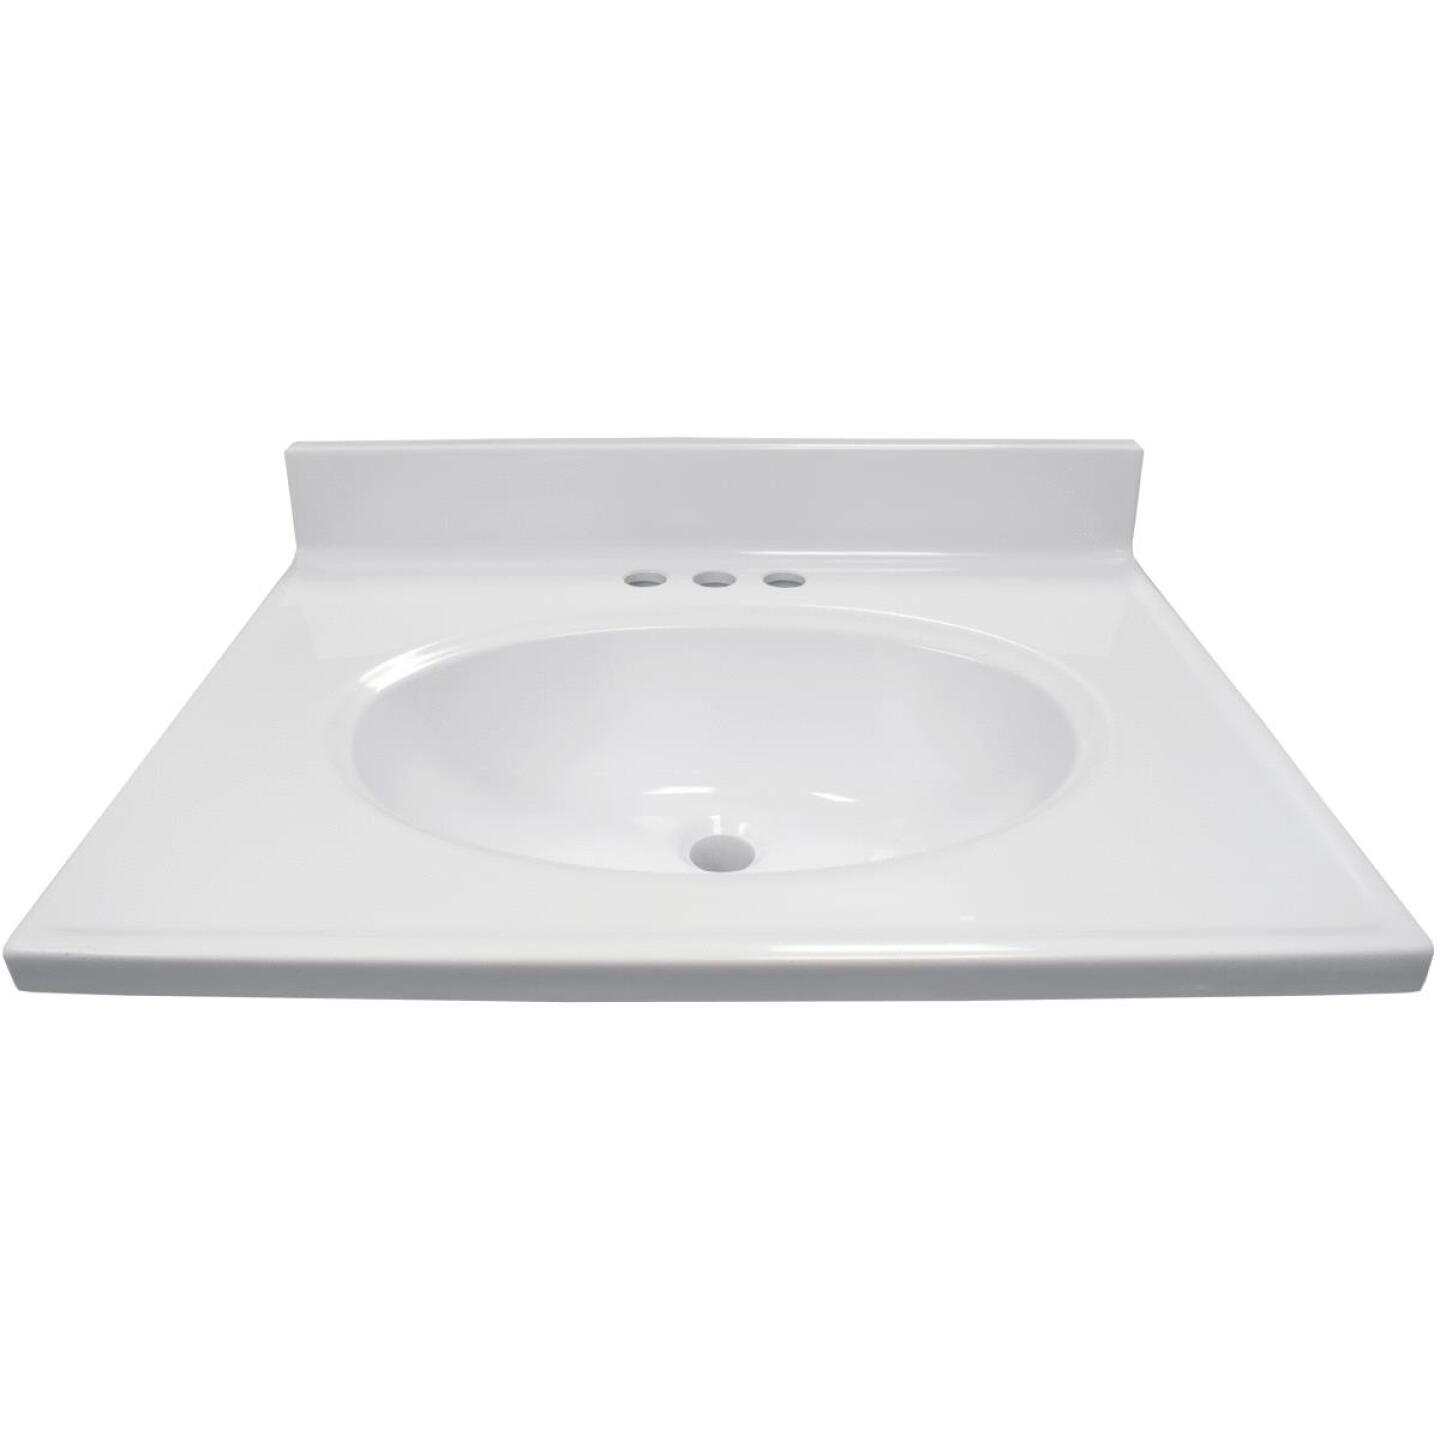 Modular Vanity Tops 25 In. W x 19 In. D Solid White Cultured Marble Vanity Top with Oval Bowl Image 2